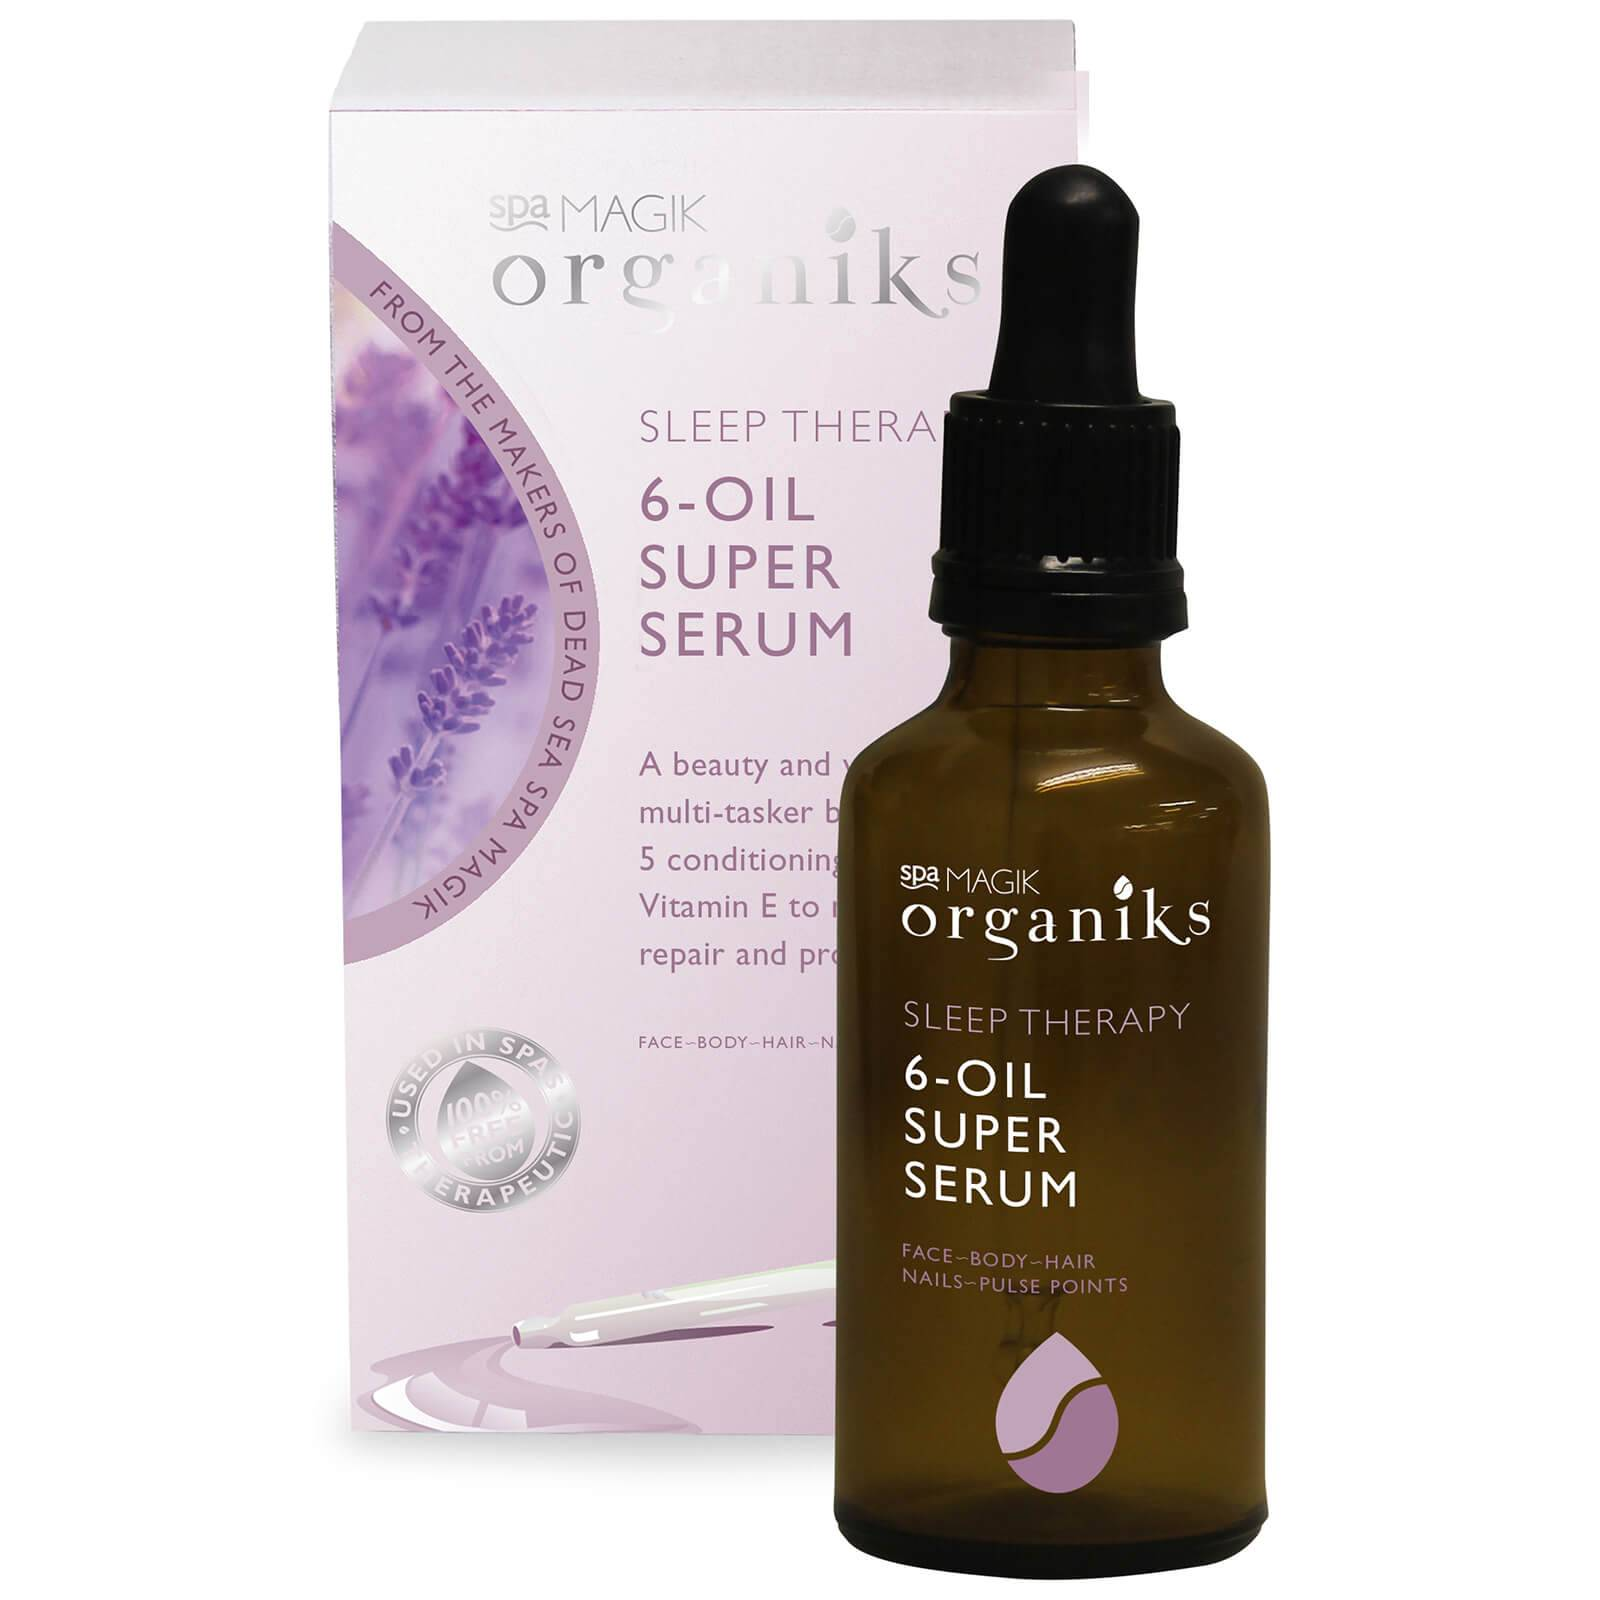 Sea Magik Sérum super apaisant aux 6 huiles essentielles Sleep Therapy 6-Oil Super Serum Spa Magik Organiks